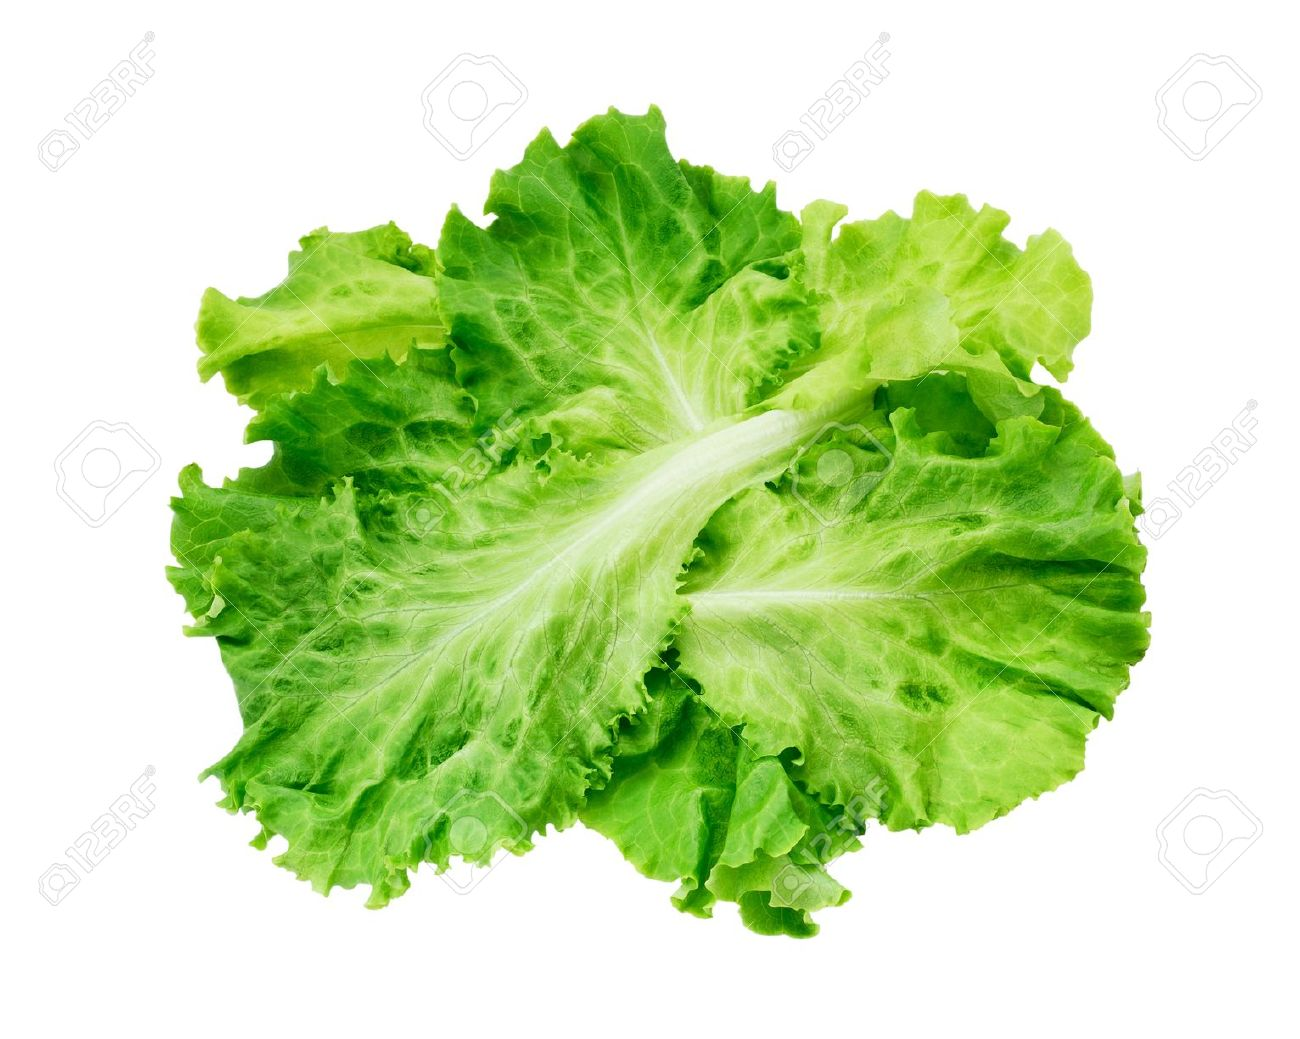 Clipart lettuce no background.